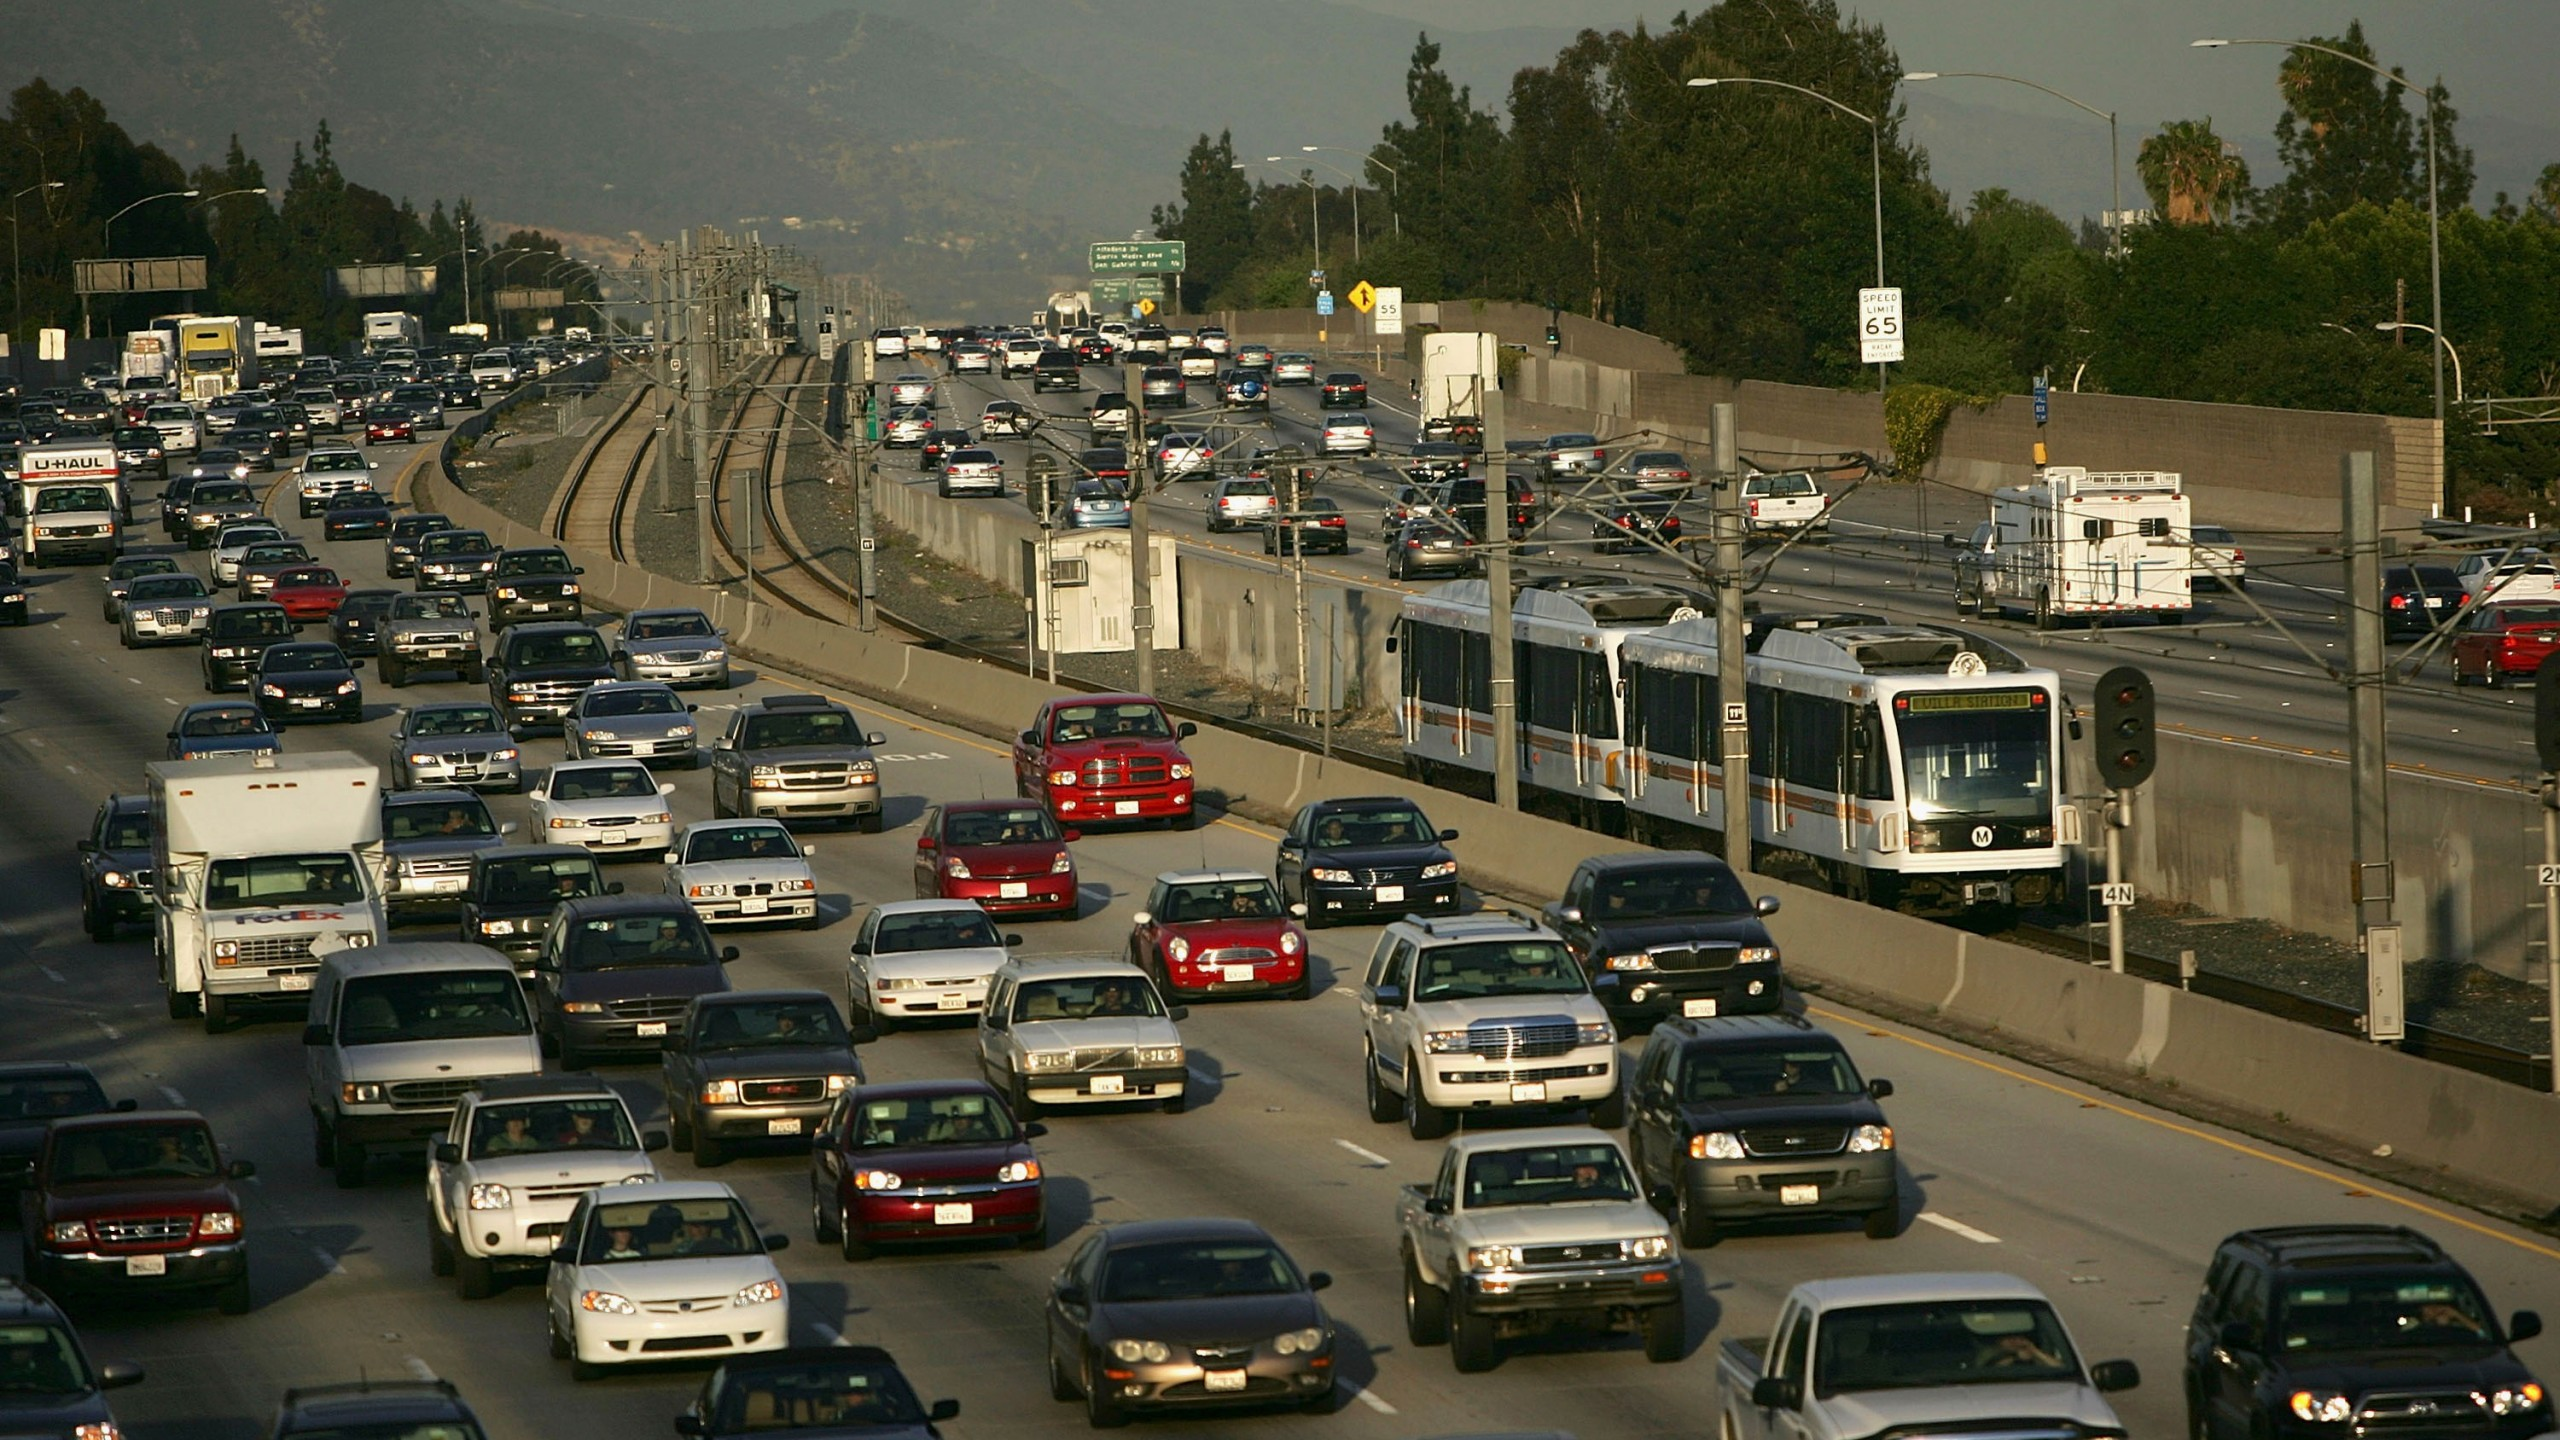 A Metro Rail train carries passengers from Los Angeles along the busy 210 Freeway on April 13, 2007, in Pasadena, California. (Photo by David McNew/Getty Images)